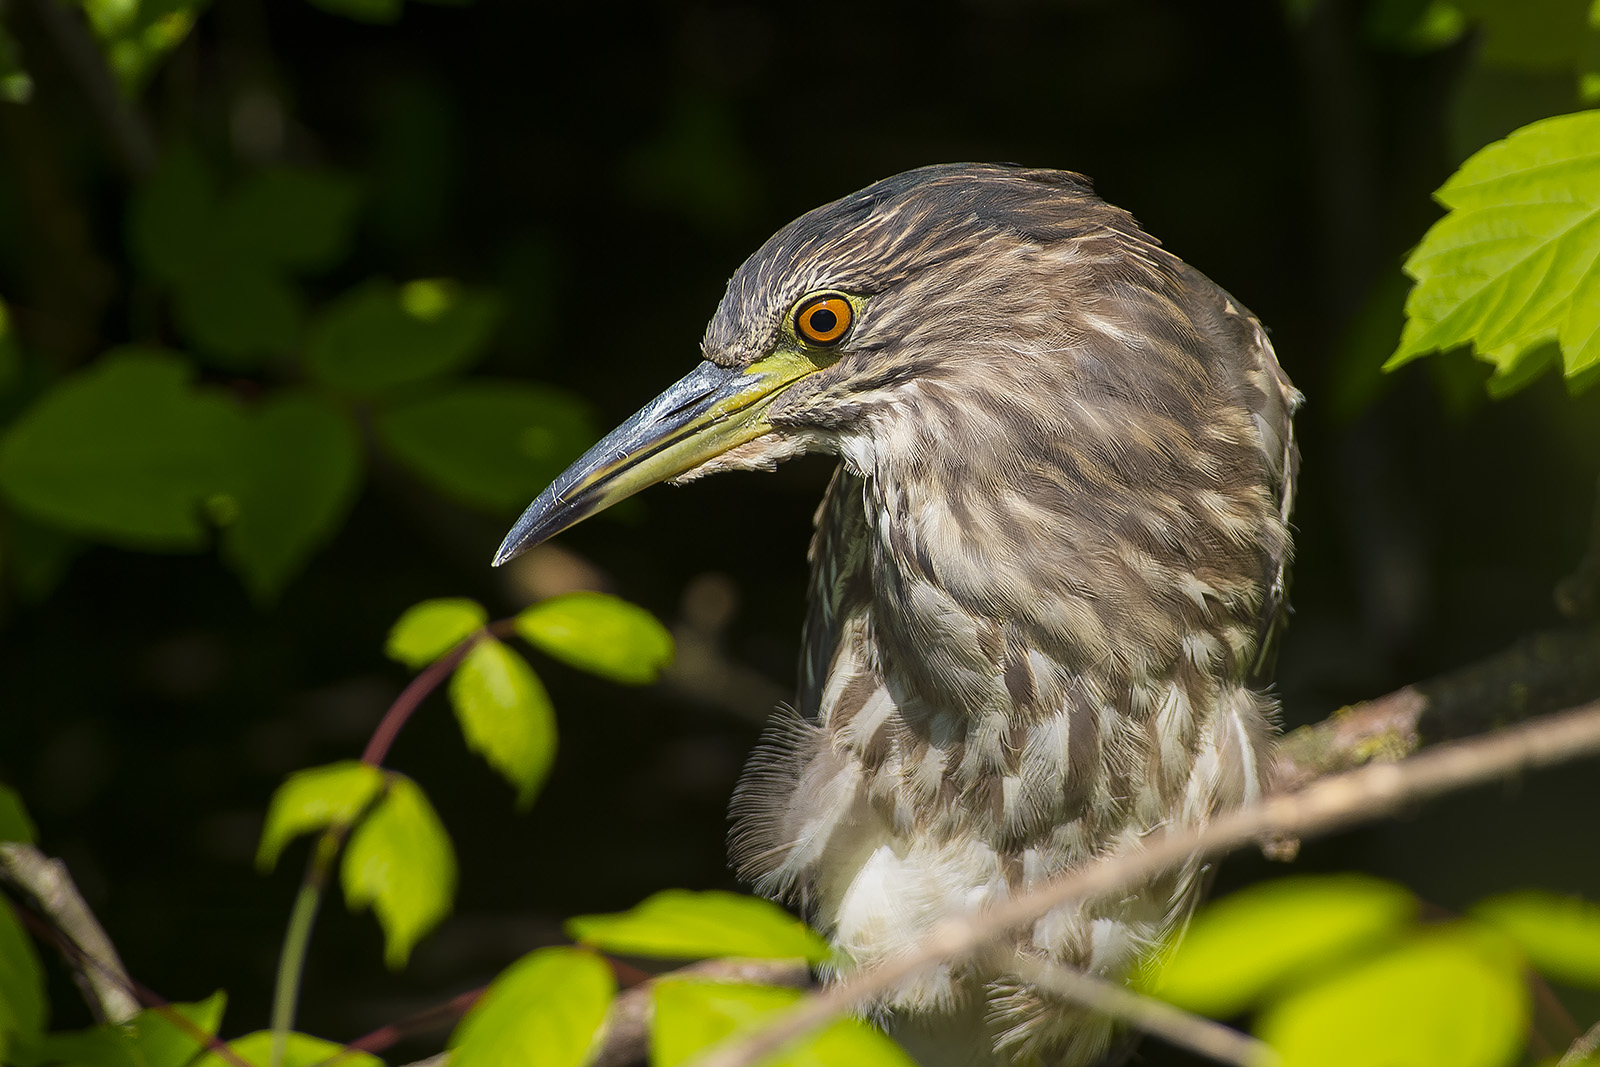 Nycticorax nycticorax juv. – giovane di Nitticora – black-crowned night heron